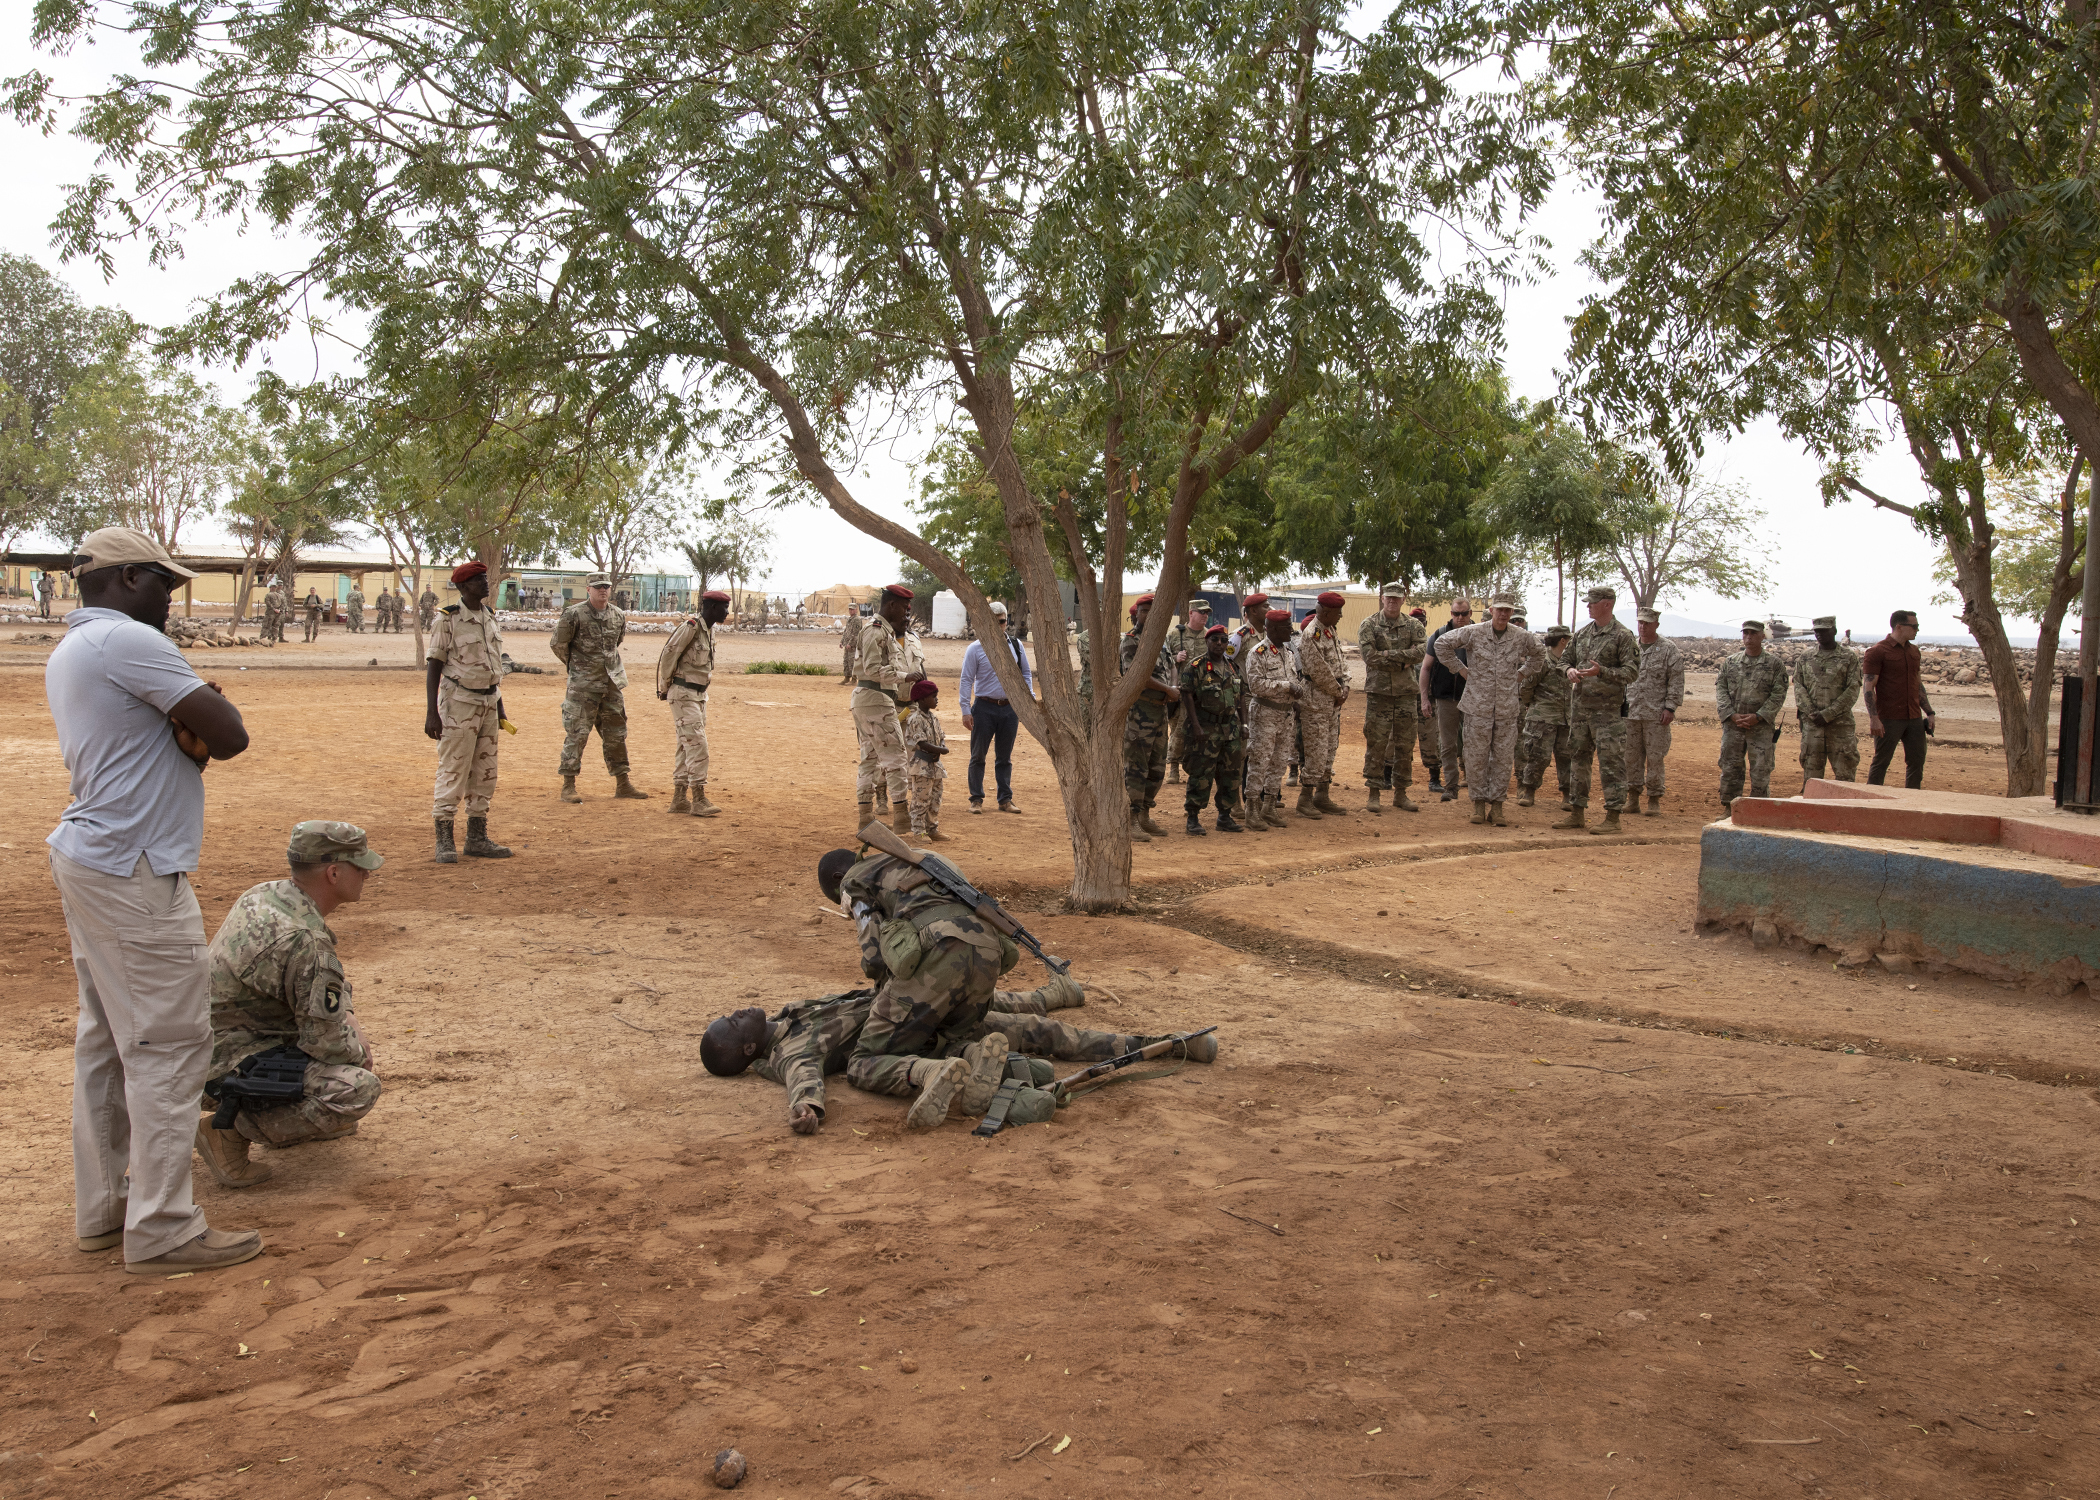 U.S. Marine Corps Gen. Thomas D. Waldhauser, commander of U.S. Africa Command, watches a demonstration by soldiers assigned to the Rapid Intervention Battalion, the Djiboutian army's elite military force, during a visit with senior Djiboutian officials, including Chief of General Staff of the Djibouti Armed Forces Zakaria Cheik Ibrahim, at a training base in Djibouti, March 21, 2019. Waldhauser visited in order to discuss the growth and development of Djiboutian security forces. (U.S. Air Force photo by Tech. Sgt. Shawn Nickel)